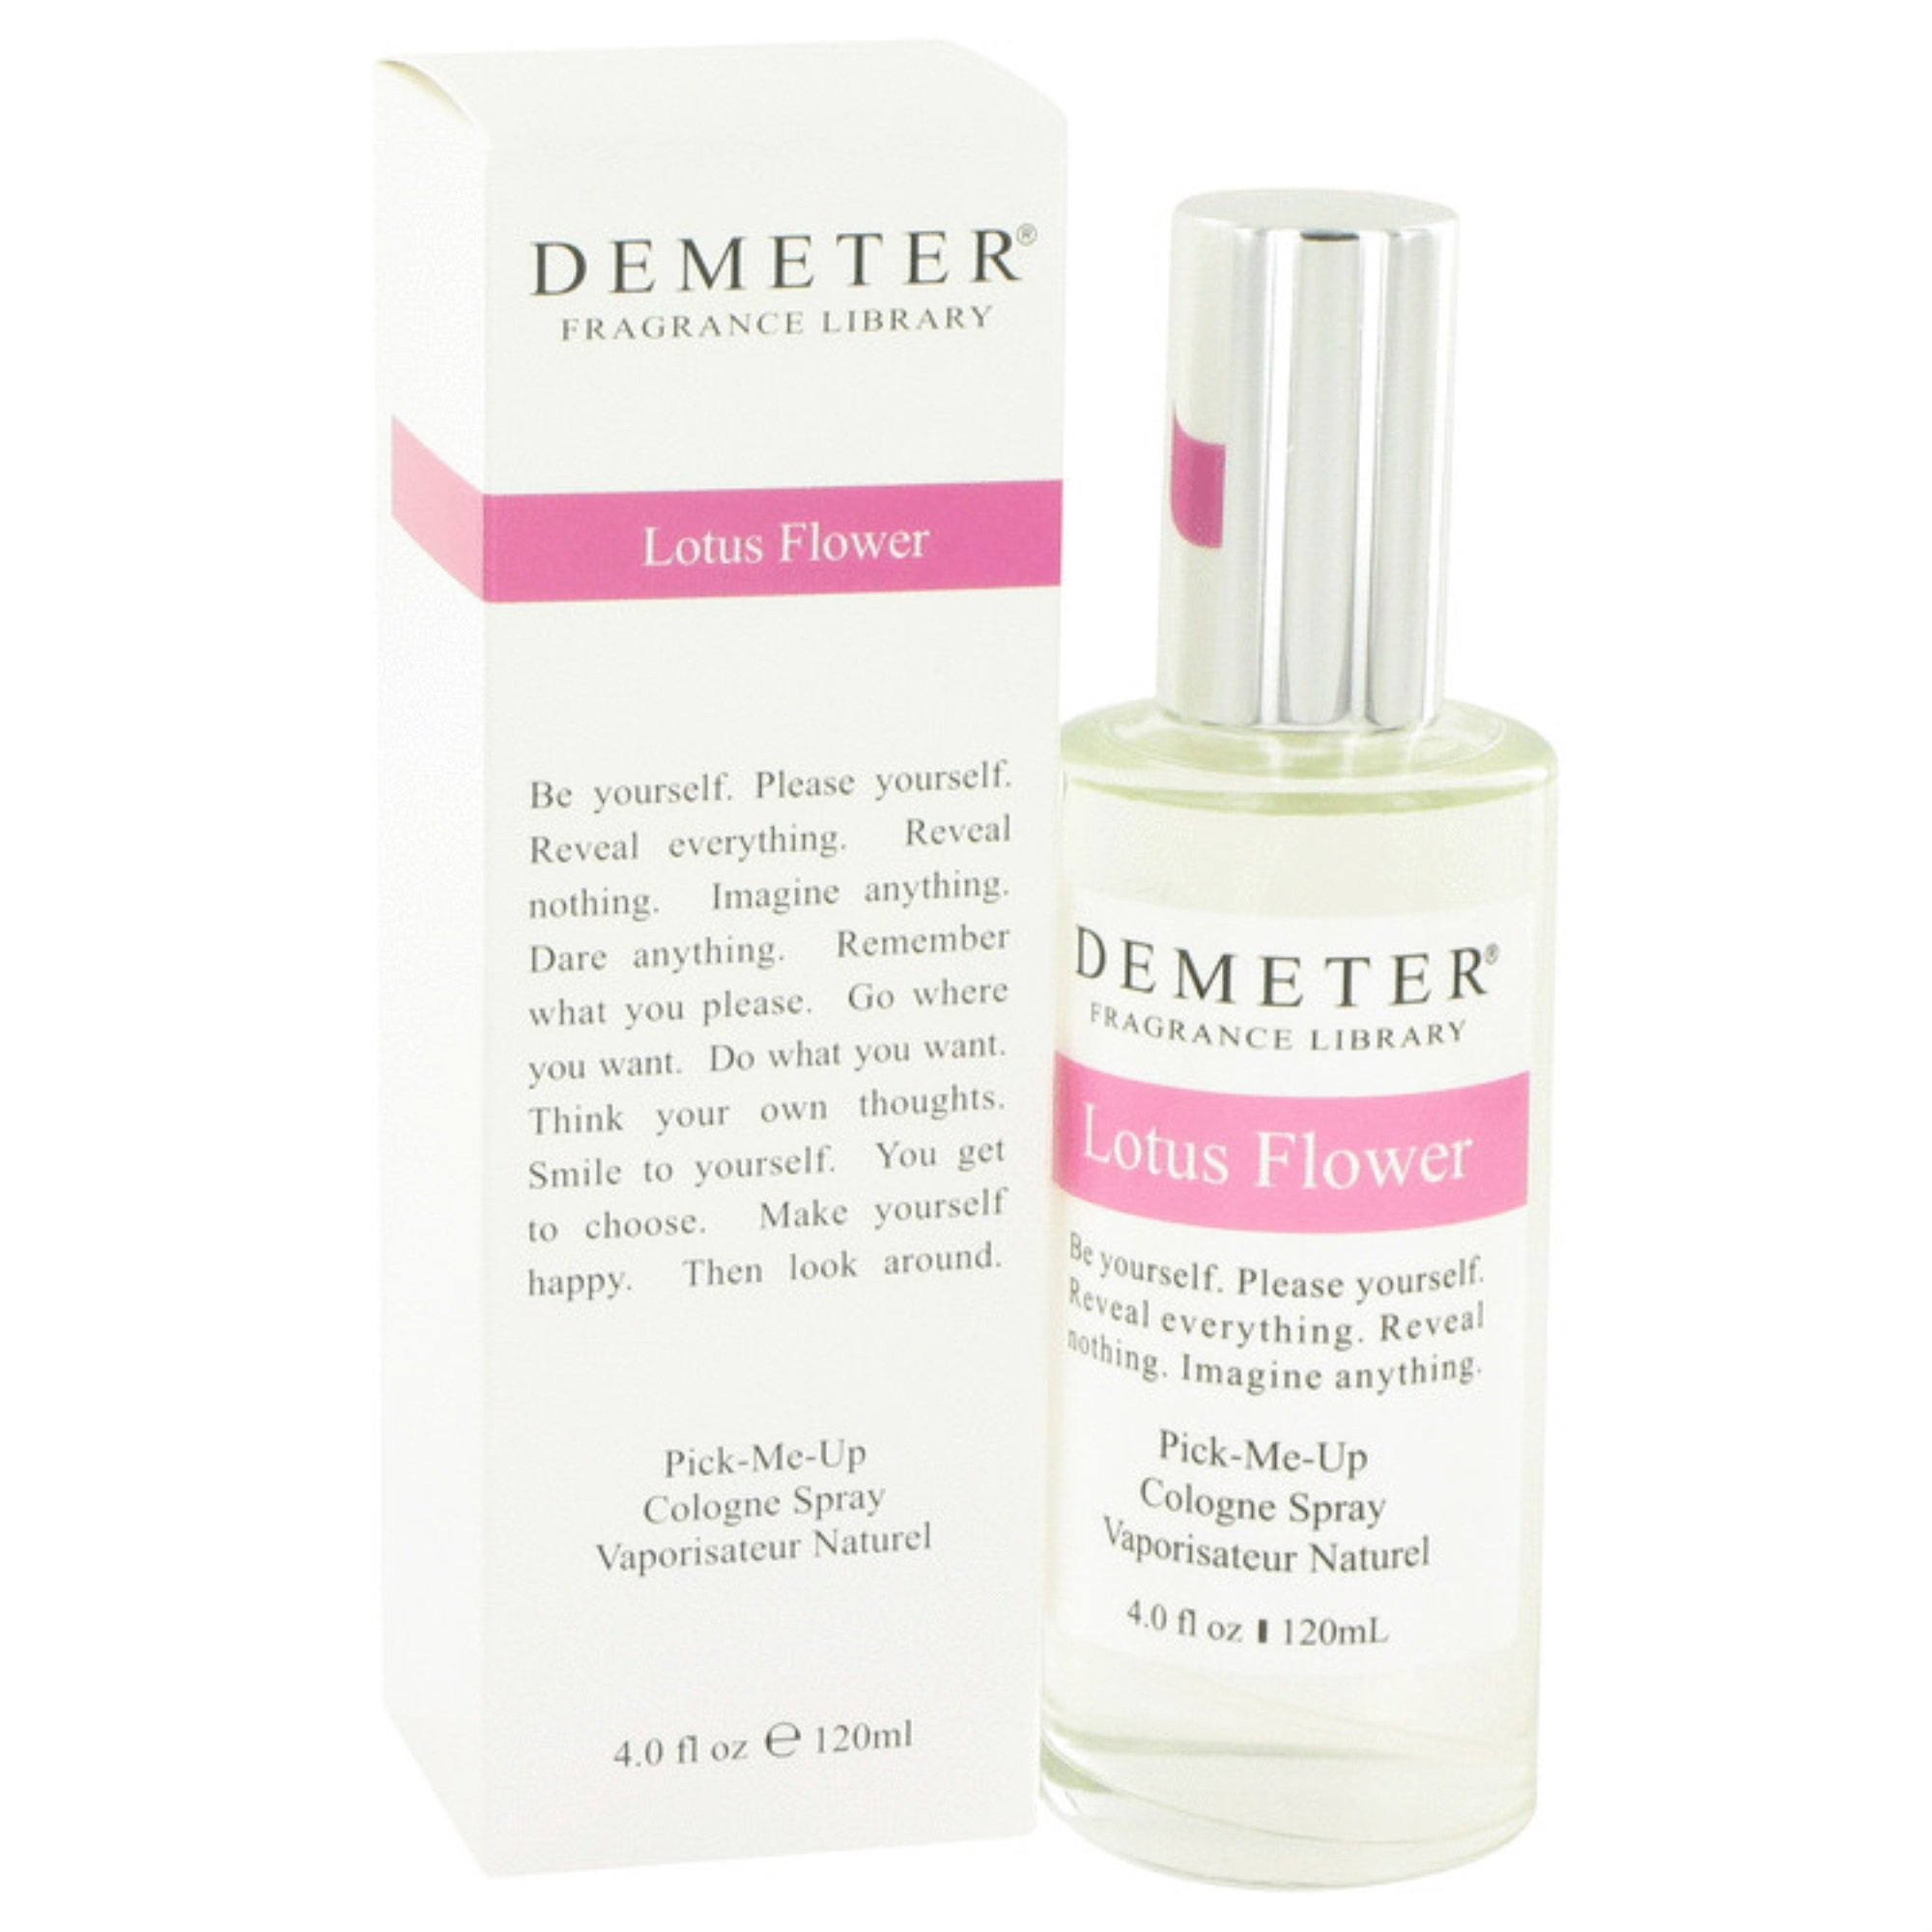 Demeter Perfume 4 Oz Lotus Flower Cologne Spray Walmart Canada